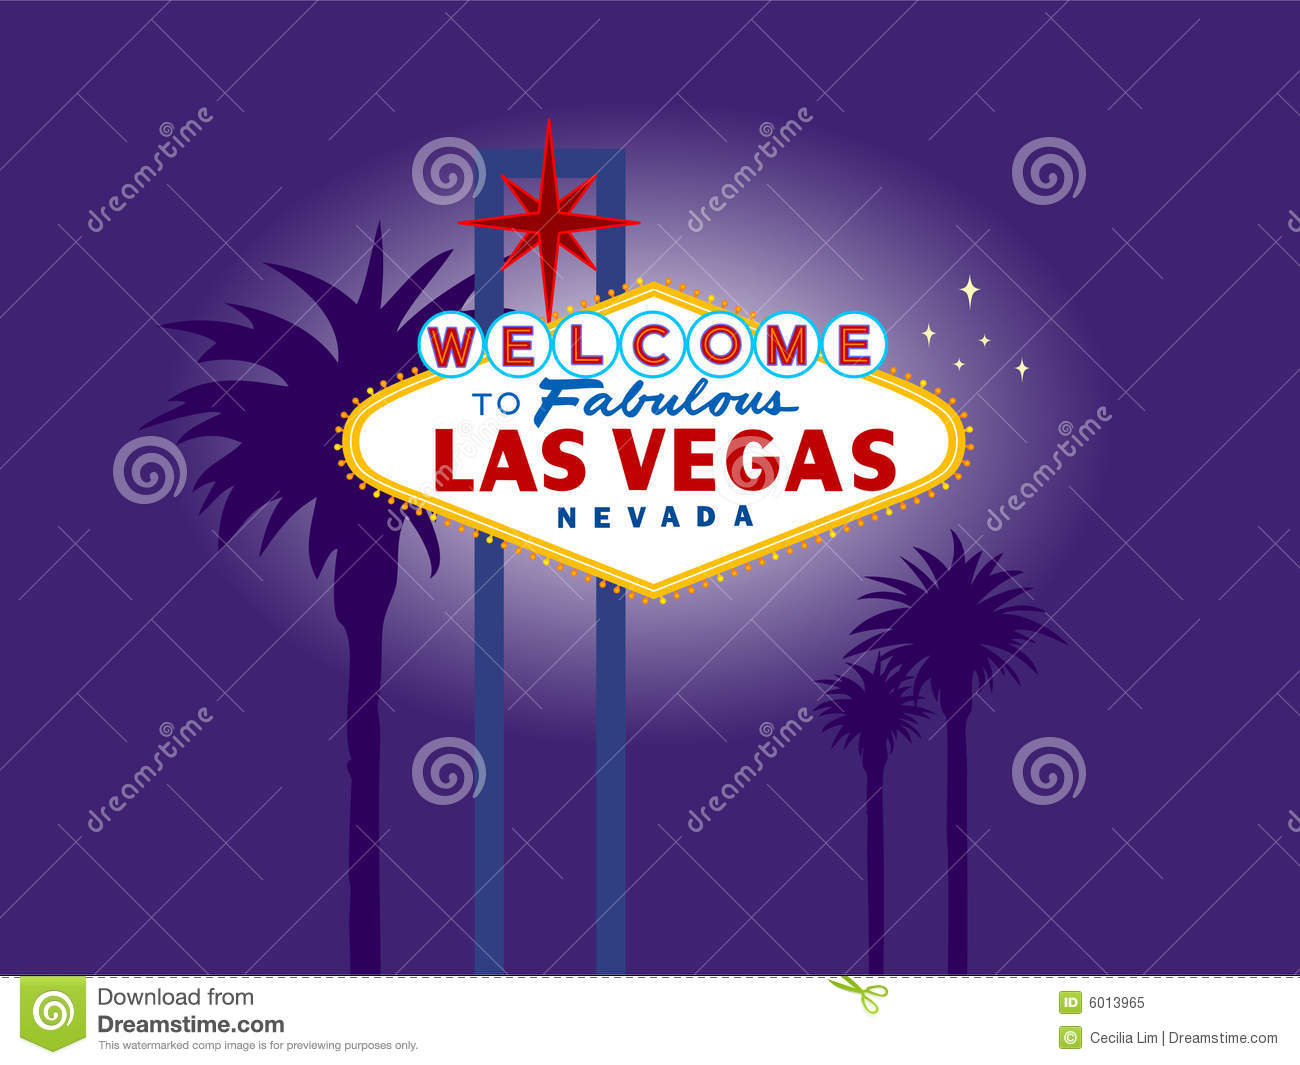 Las Vegas Welcome Sign at Night with Palm Trees